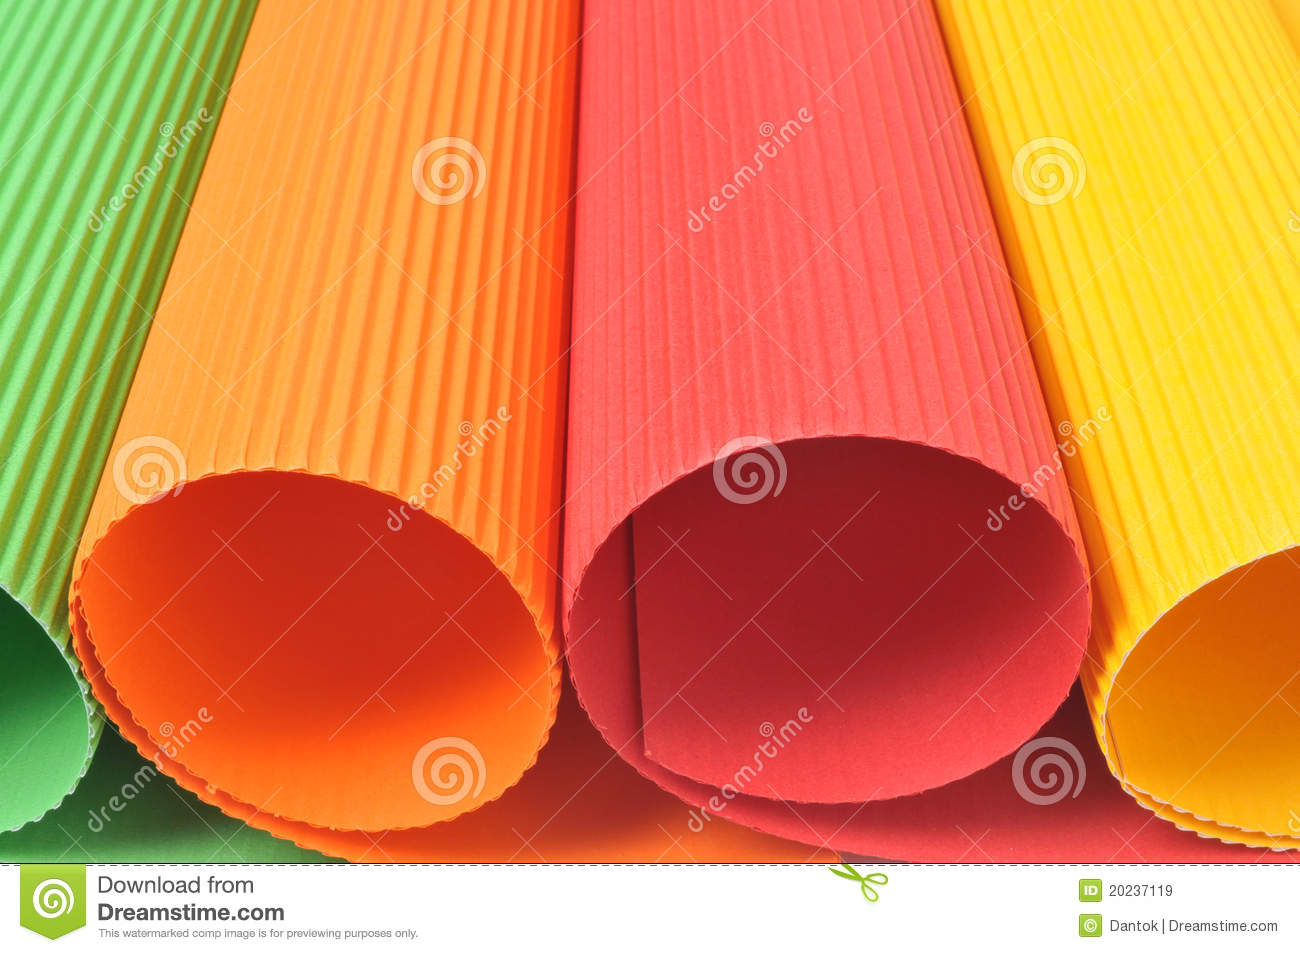 color papers royalty free stock images - Color Papers